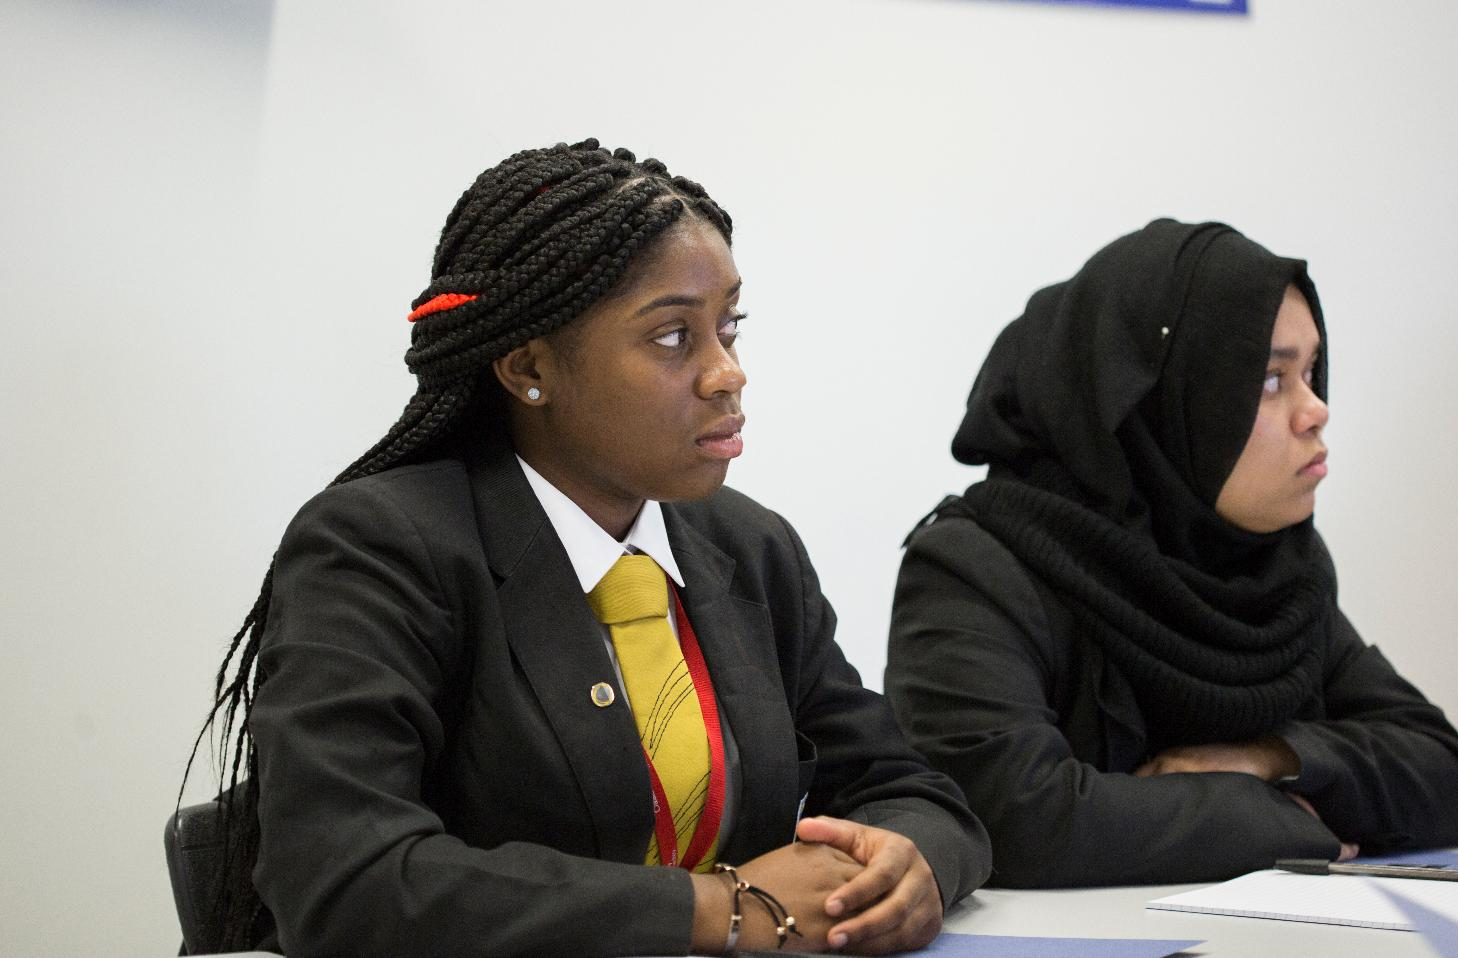 Our 'woke' students could change the world (and ace their GCSEs!)